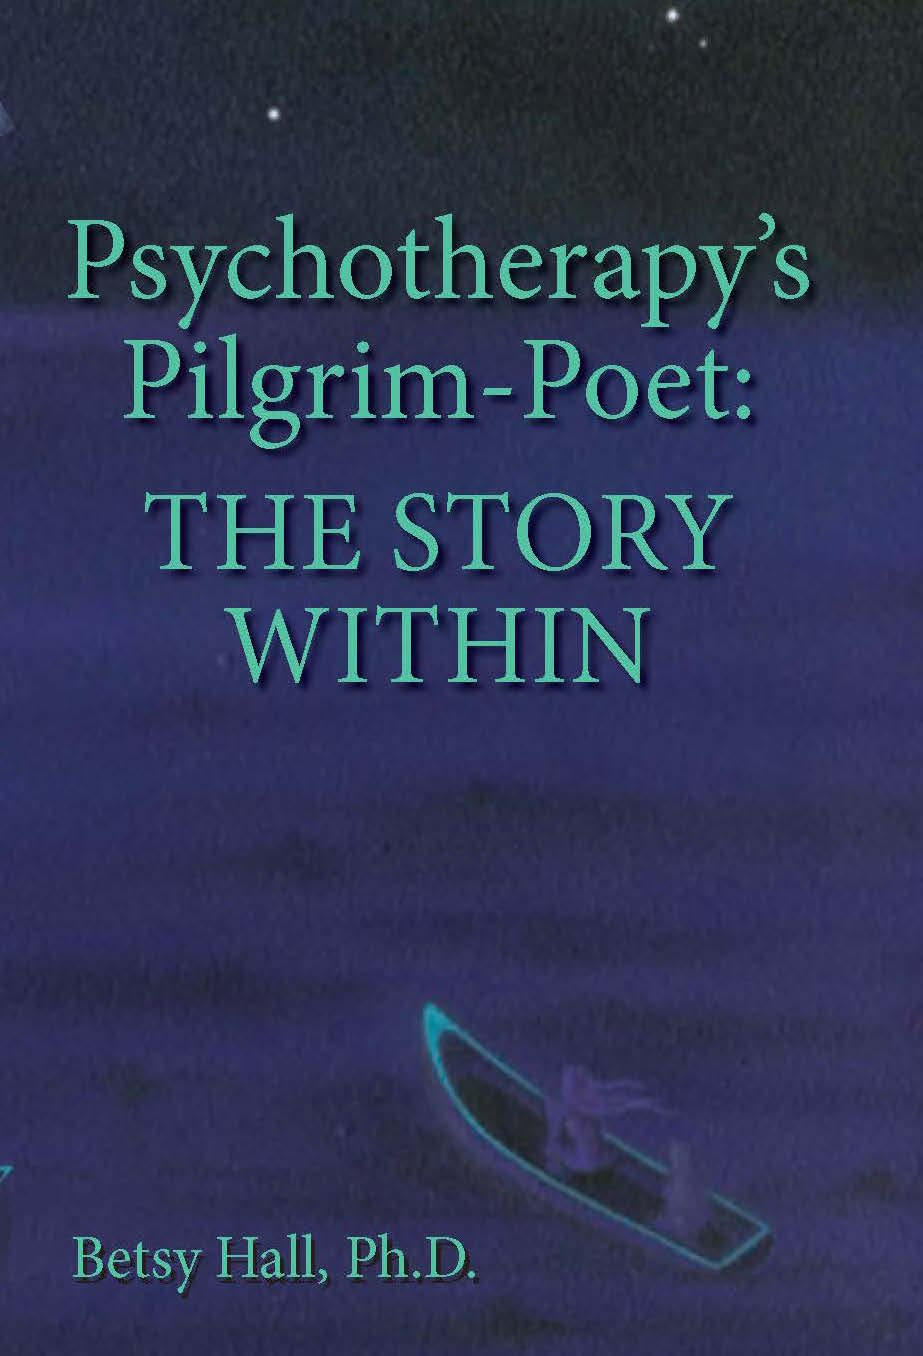 Psychotherapy's Pilgrim-Poet: The Story Within